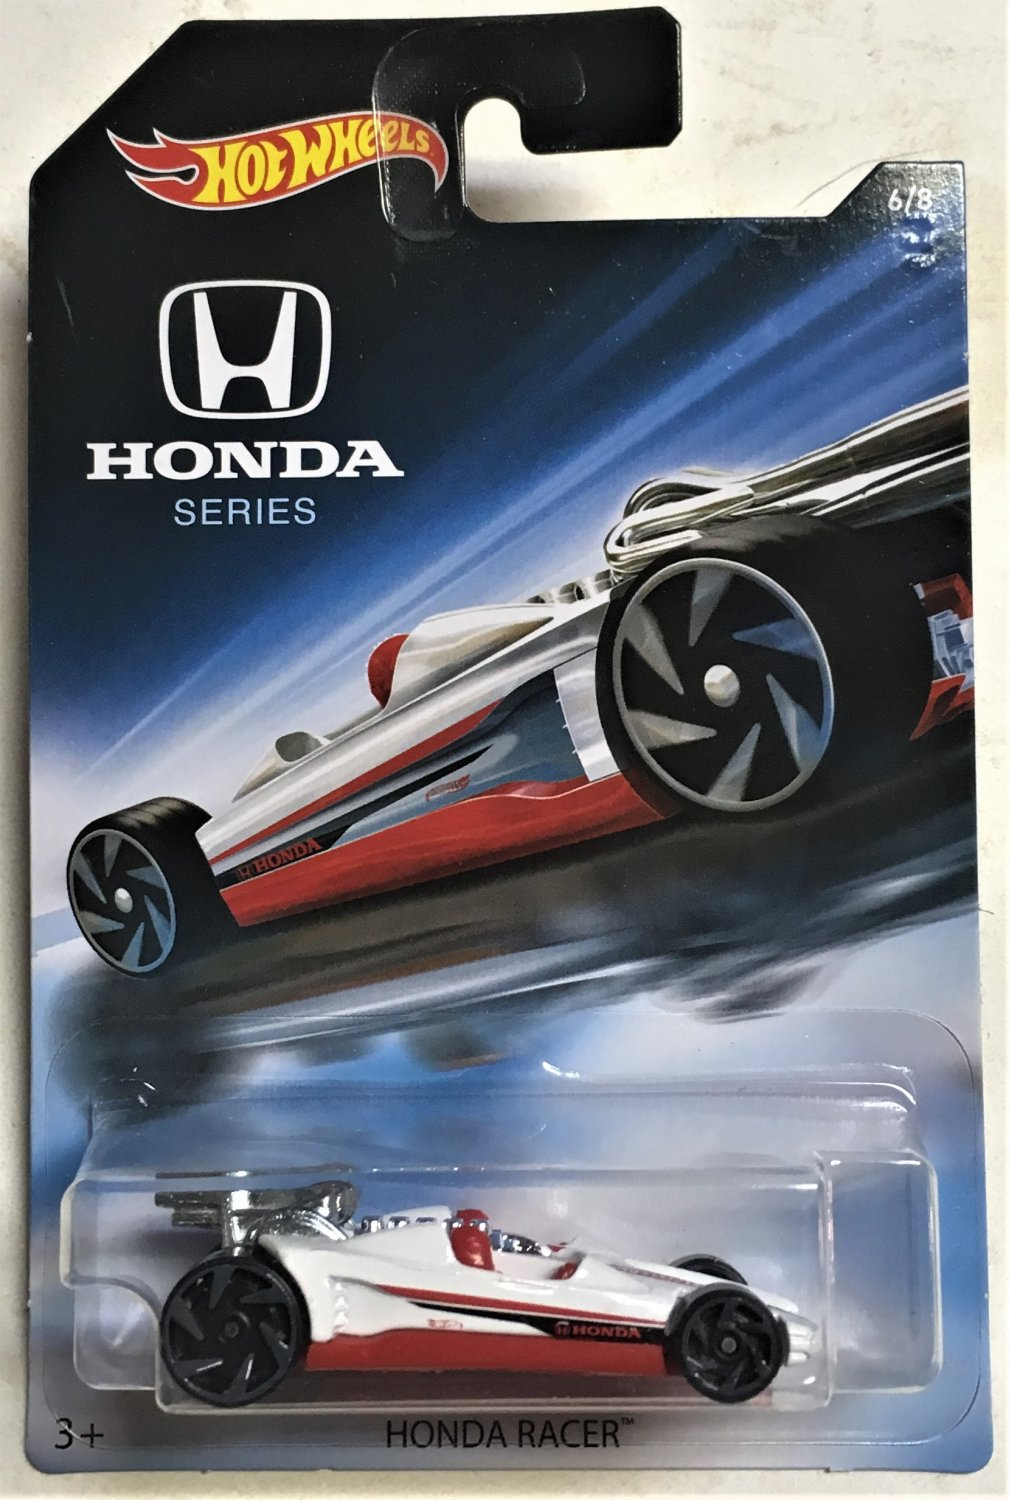 2018 Hot Wheels Honda #6 Honda Racer